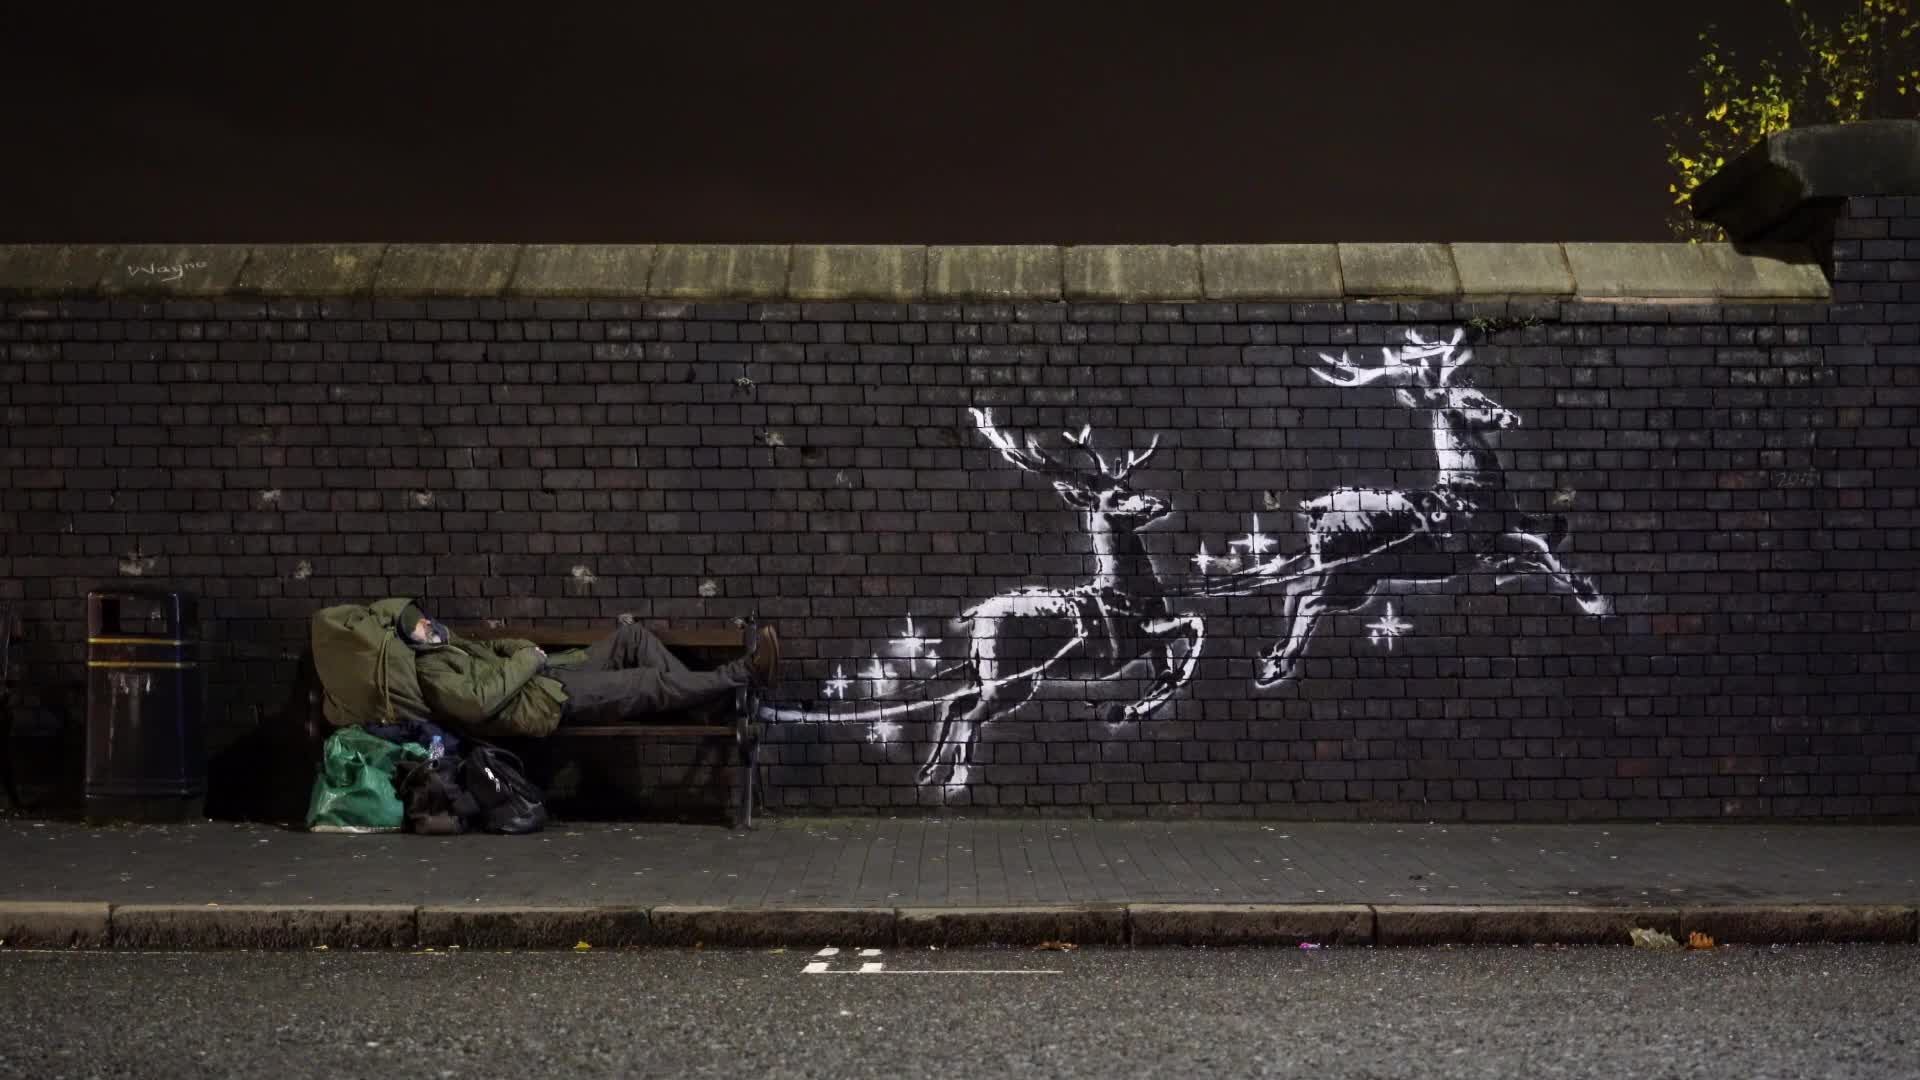 Banksy Makes Poignant Statement About Homelessness With New Reindeer Street Art